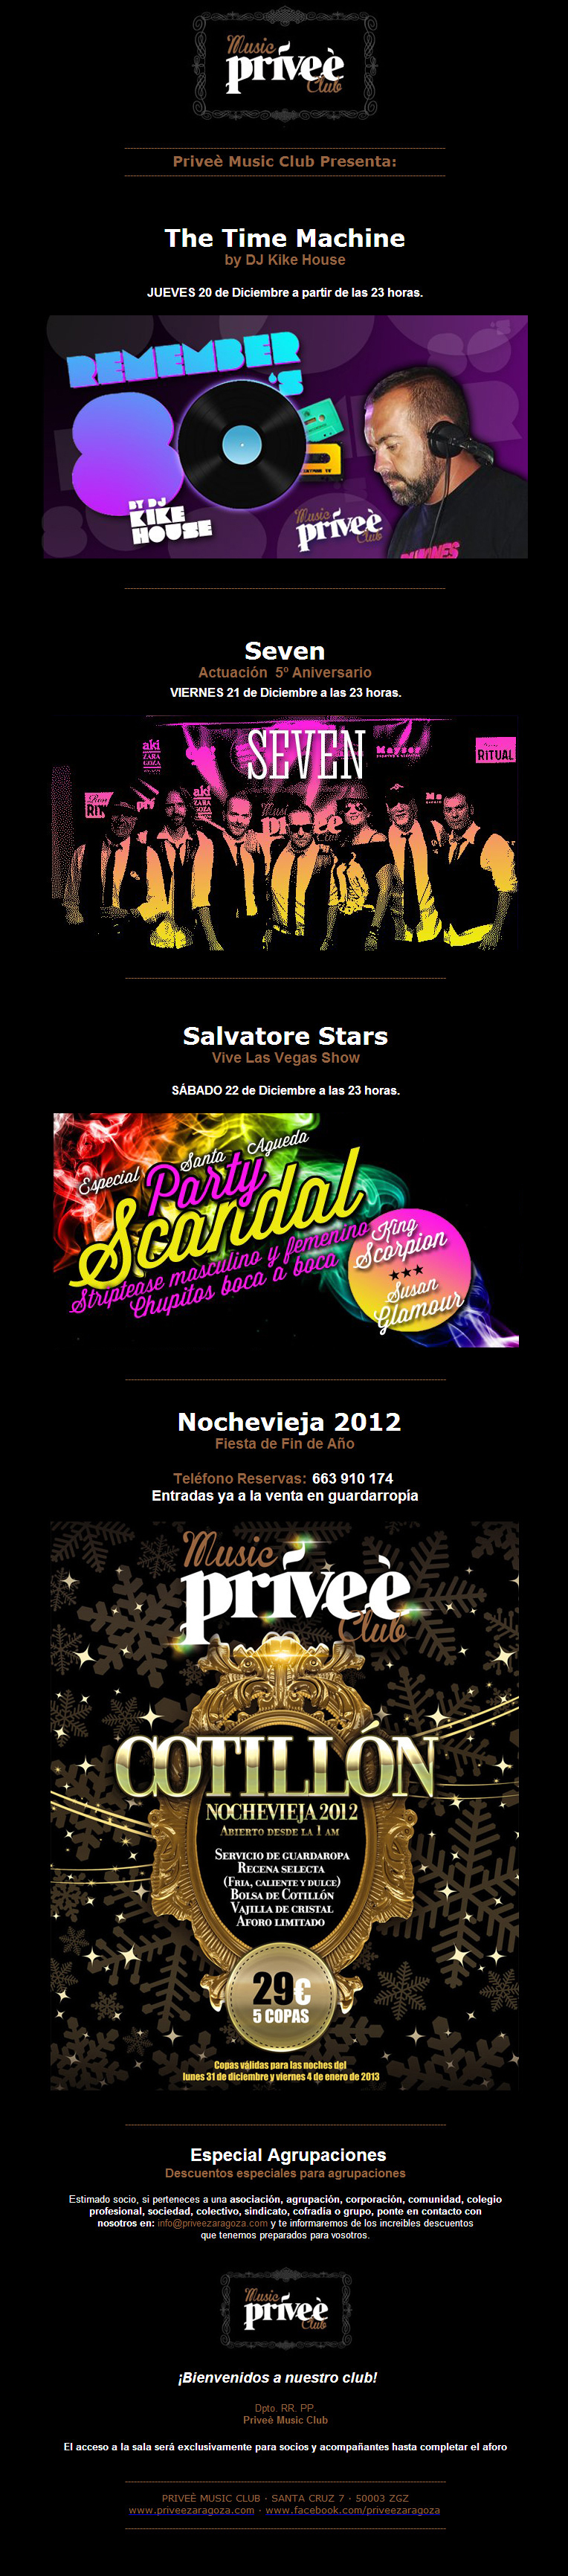 Newsletter Privee diseño paginas web zaragoza